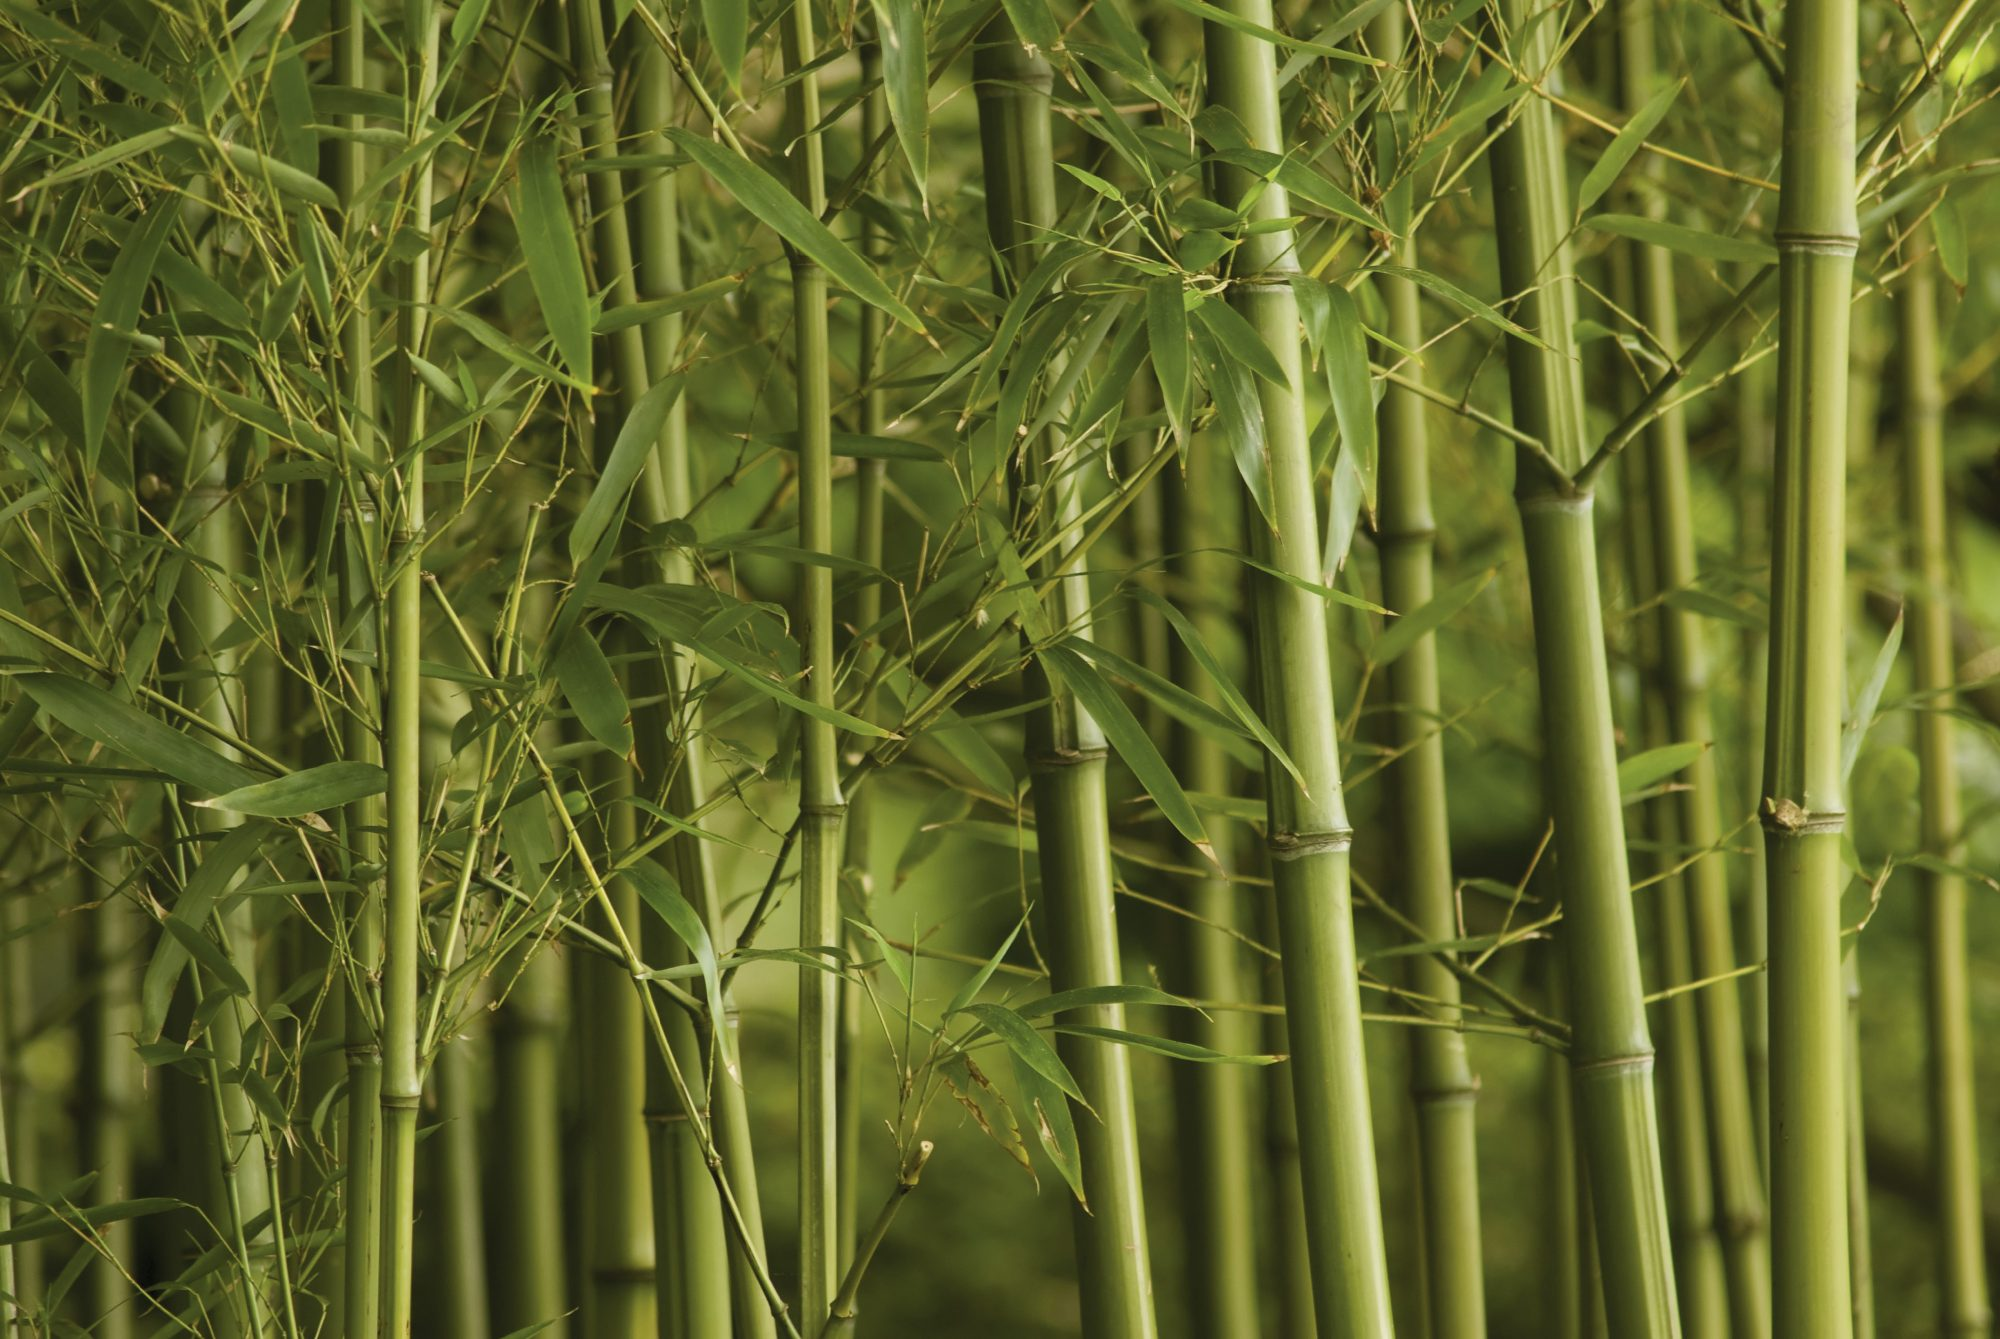 Bamboo Stocks